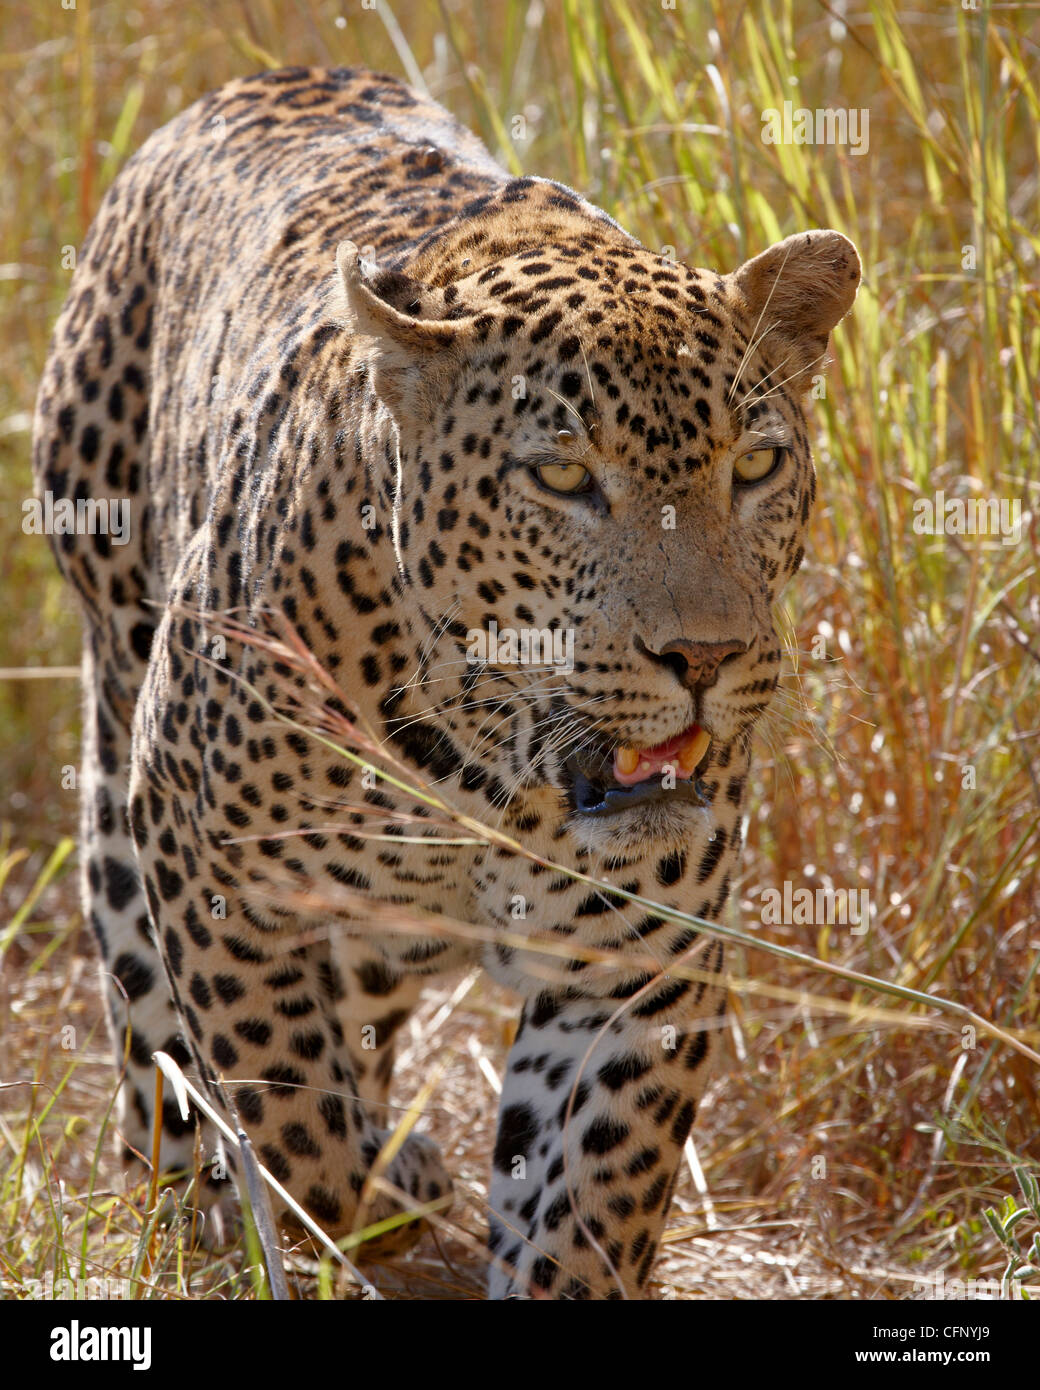 Male leopard (Panthera pardus), Kruger National Park, South Africa, Africa - Stock Image